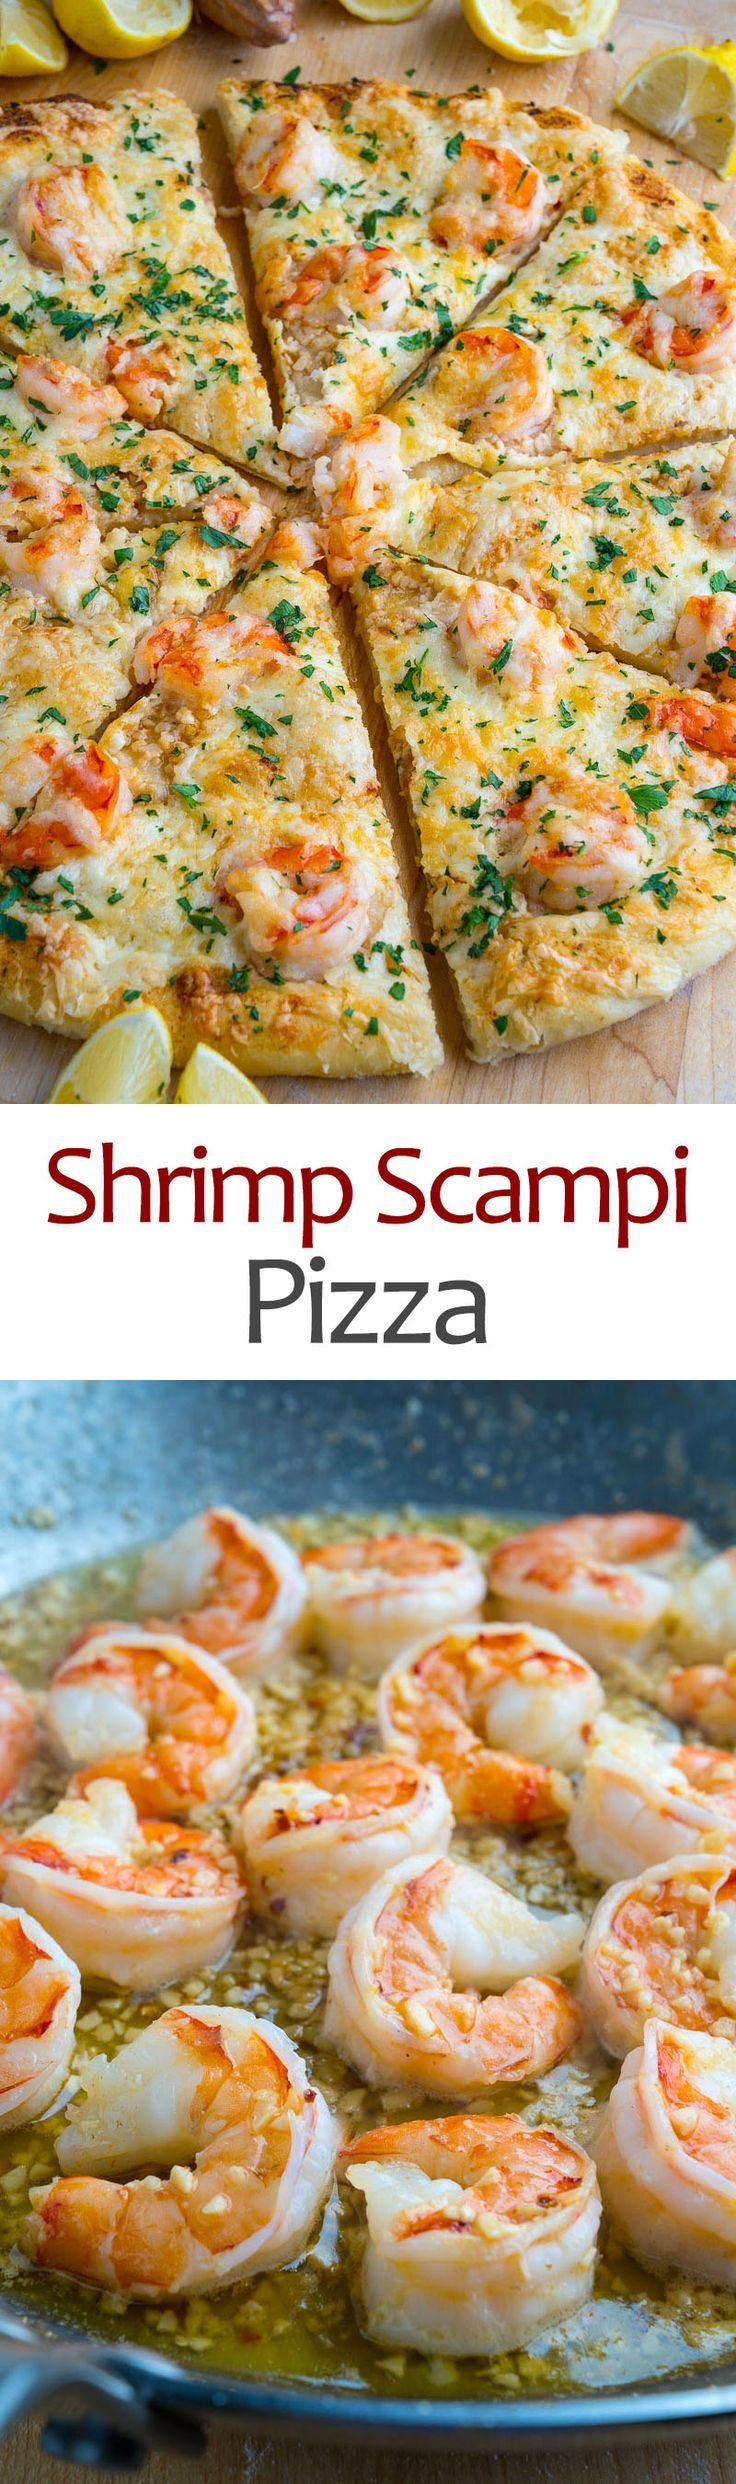 Shrimp Scampi Pizza Recipe #shrimpscampi